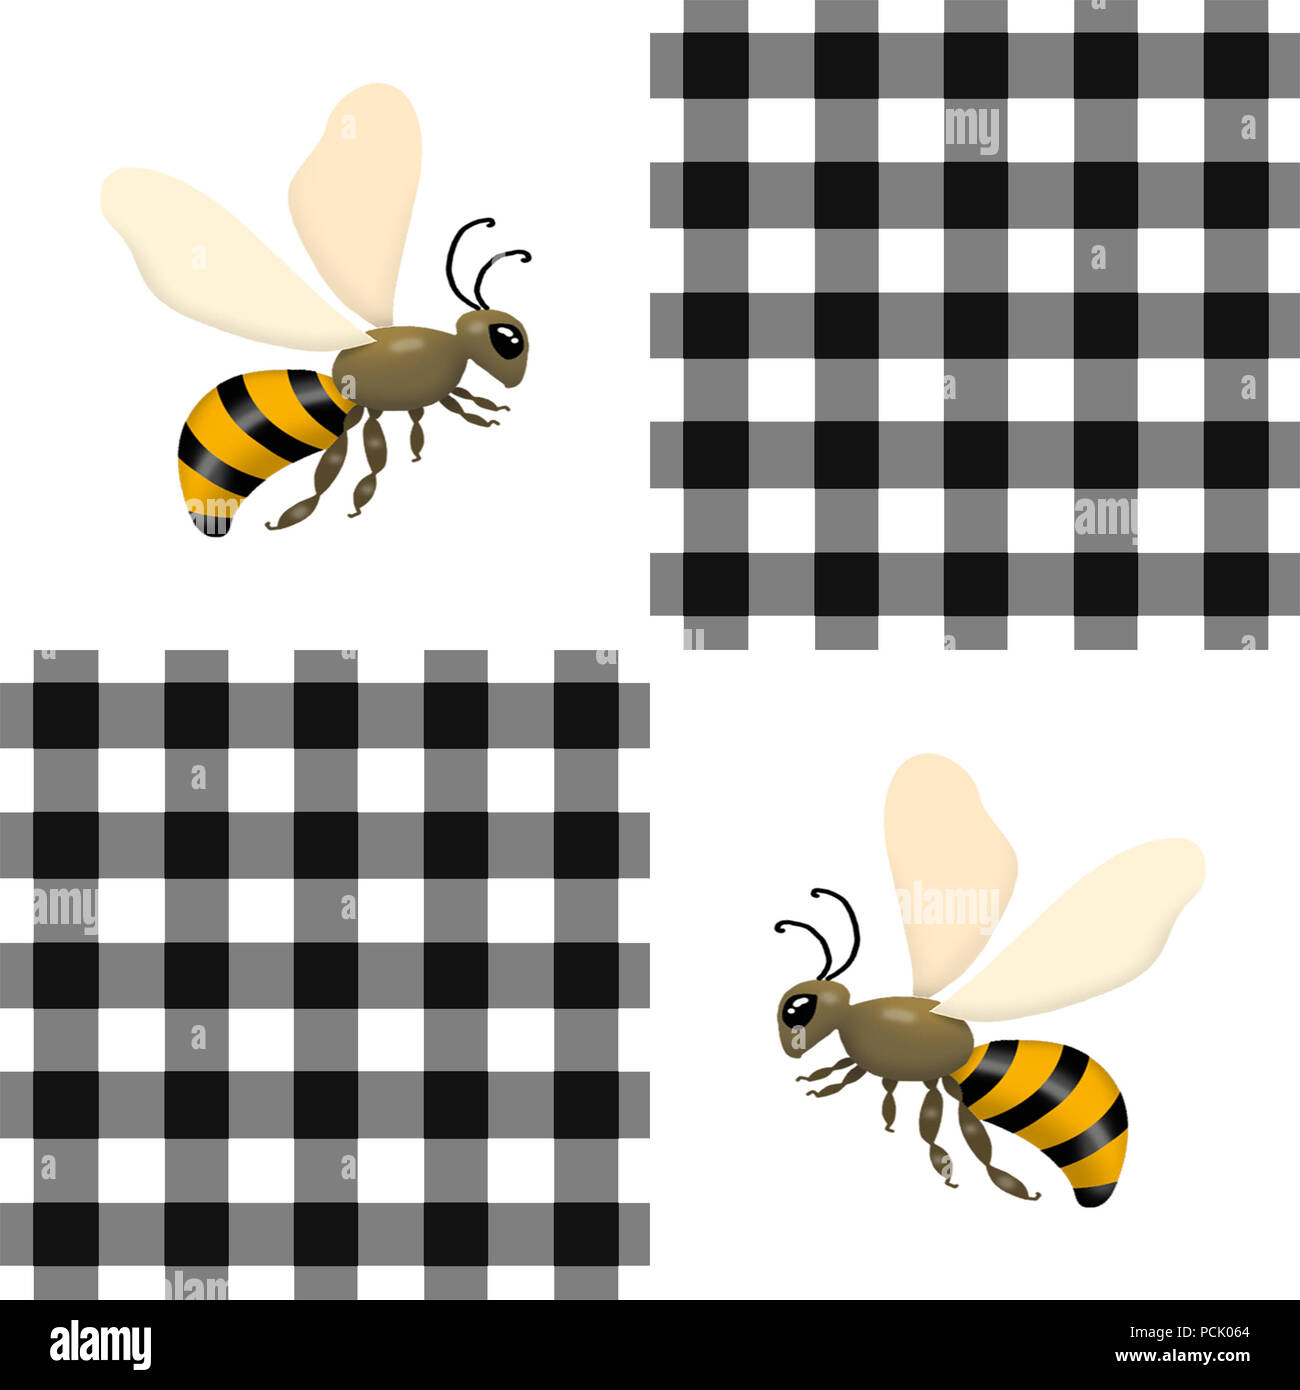 Repeating pattern illustration of honey-type bees on a black and white checkered background. - Stock Image